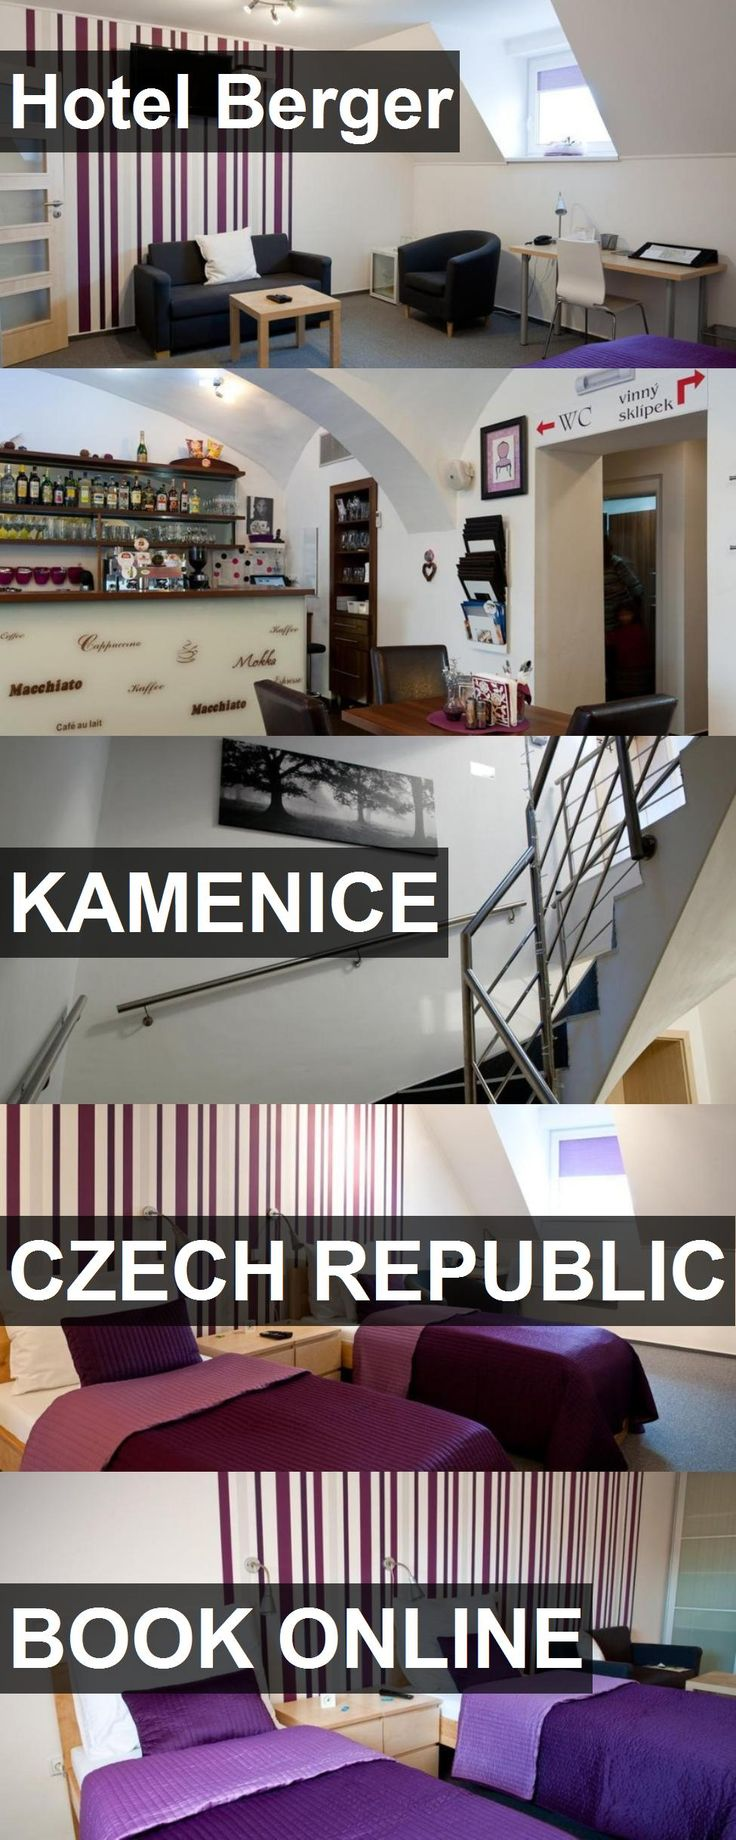 Hotel Hotel Berger in Kamenice, Czech Republic. For more information, photos, reviews and best prices please follow the link. #CzechRepublic #Kamenice #hotel #travel #vacation